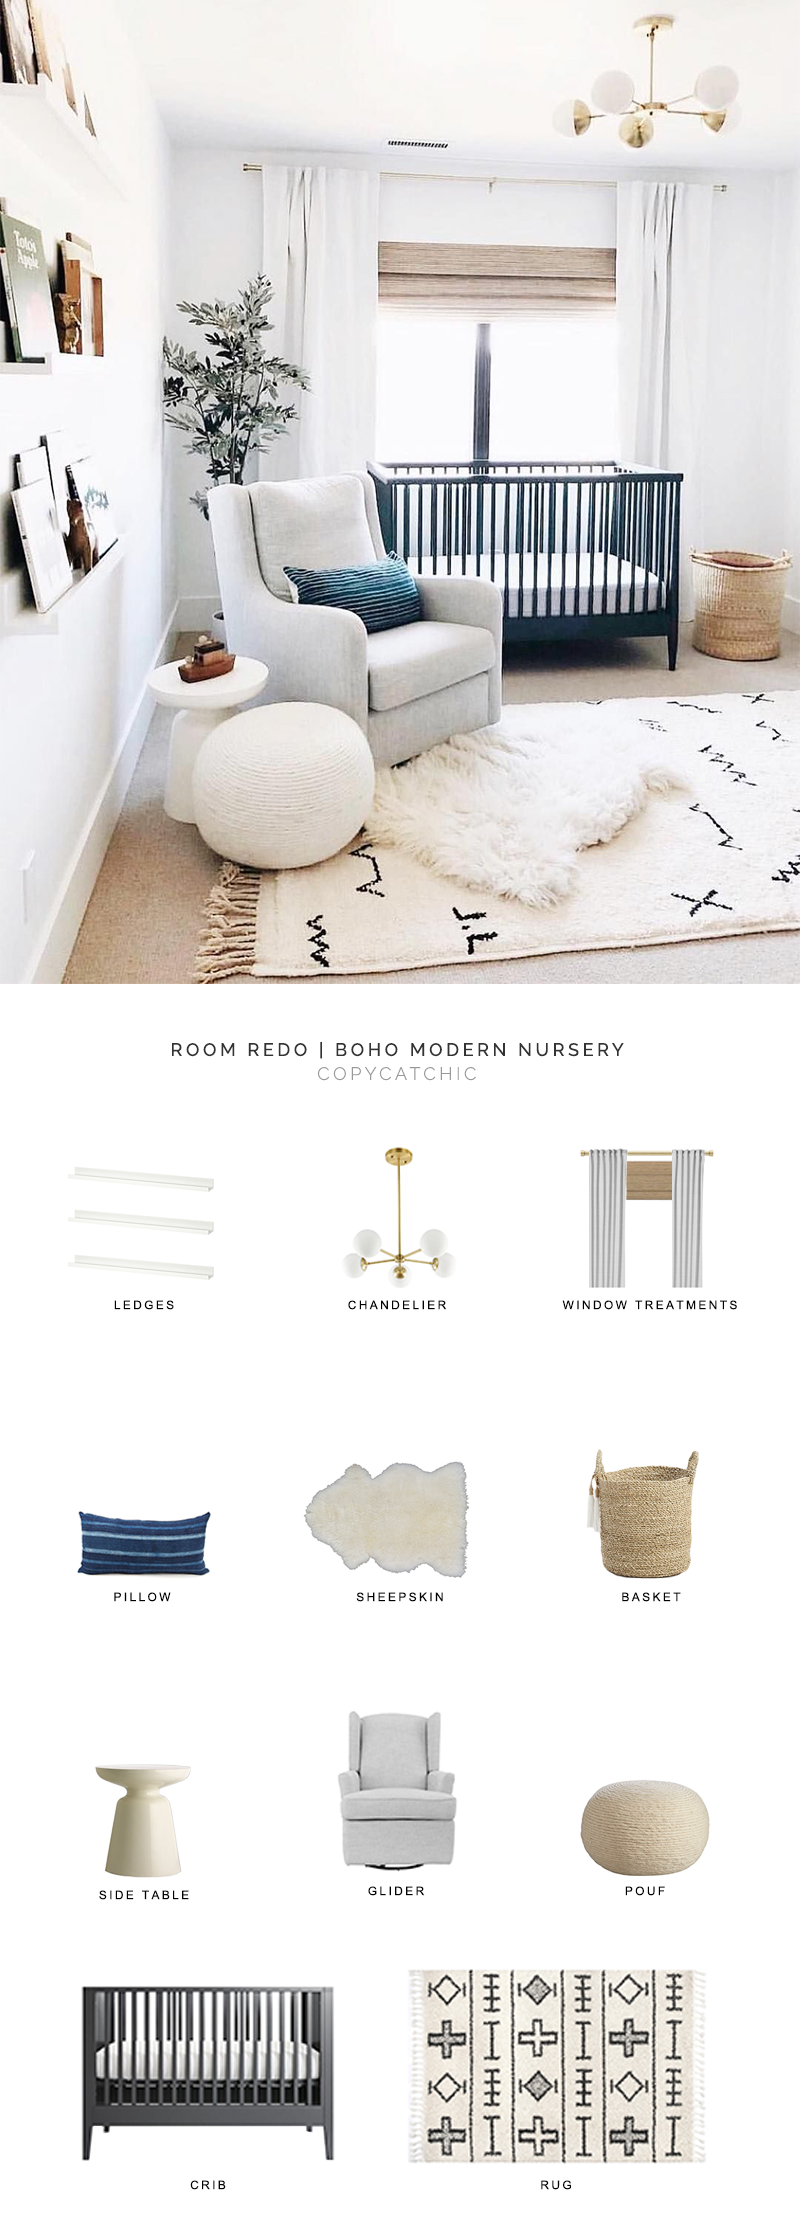 boho modern nursery look for less, copycatchic luxe living for less, budget home decor and design, daily finds, home trends, sales, budget travel and room redos